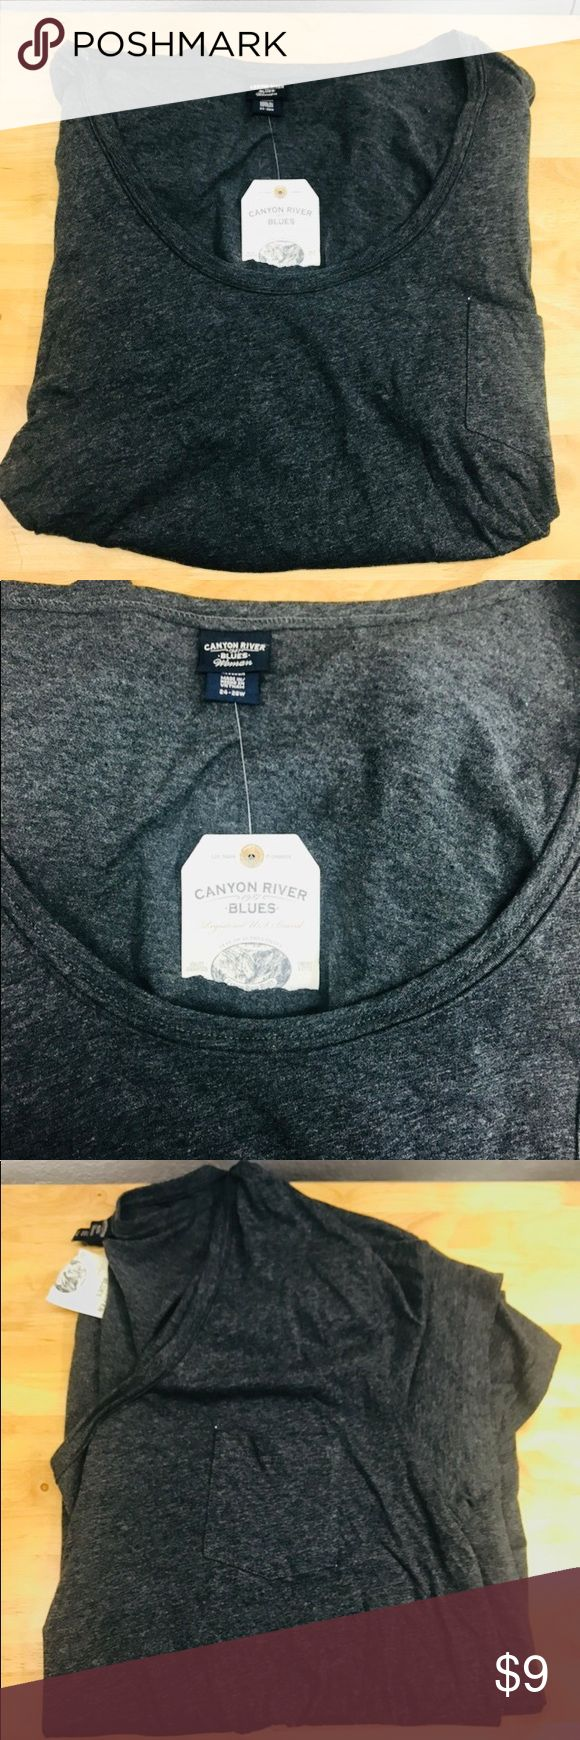 Brand new canyon river blues tee with tags Gray tee shirt with tags and front pocket Canyon river blues Tops